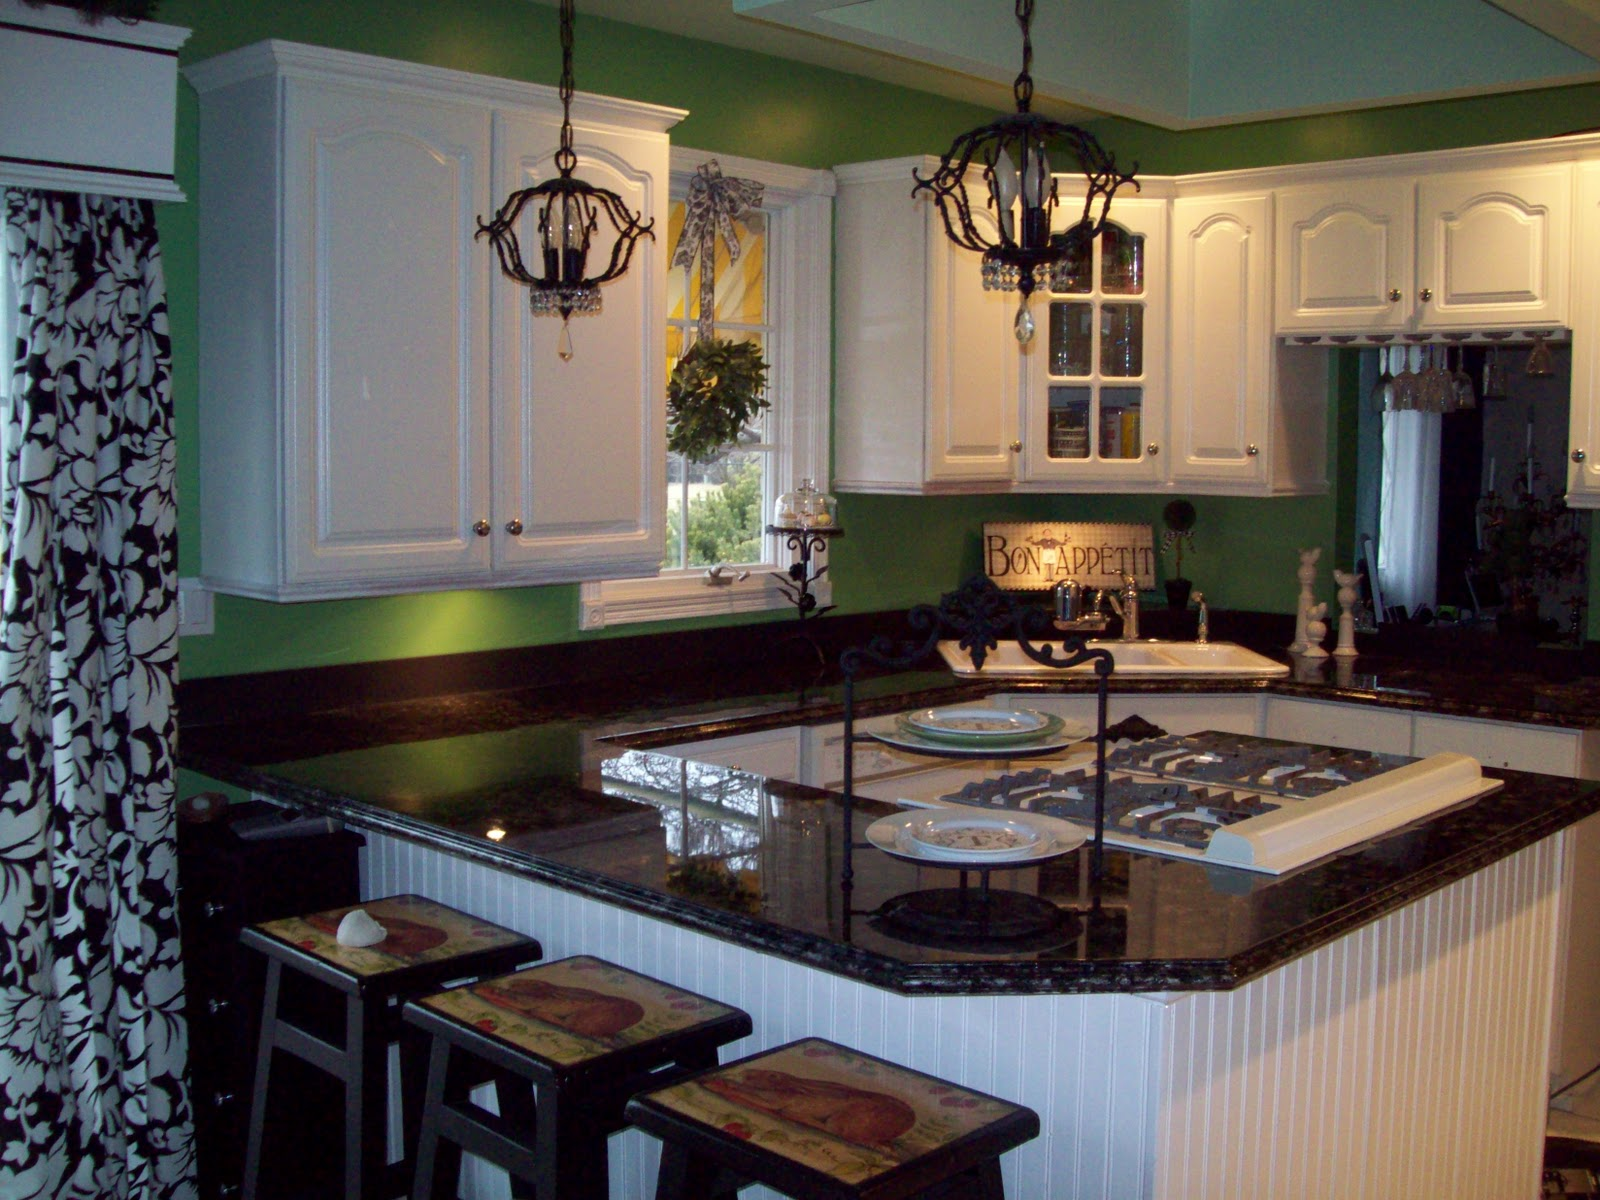 Get The Look Your Want For Countertops On A Budget With One Of These 10  Inexpensive